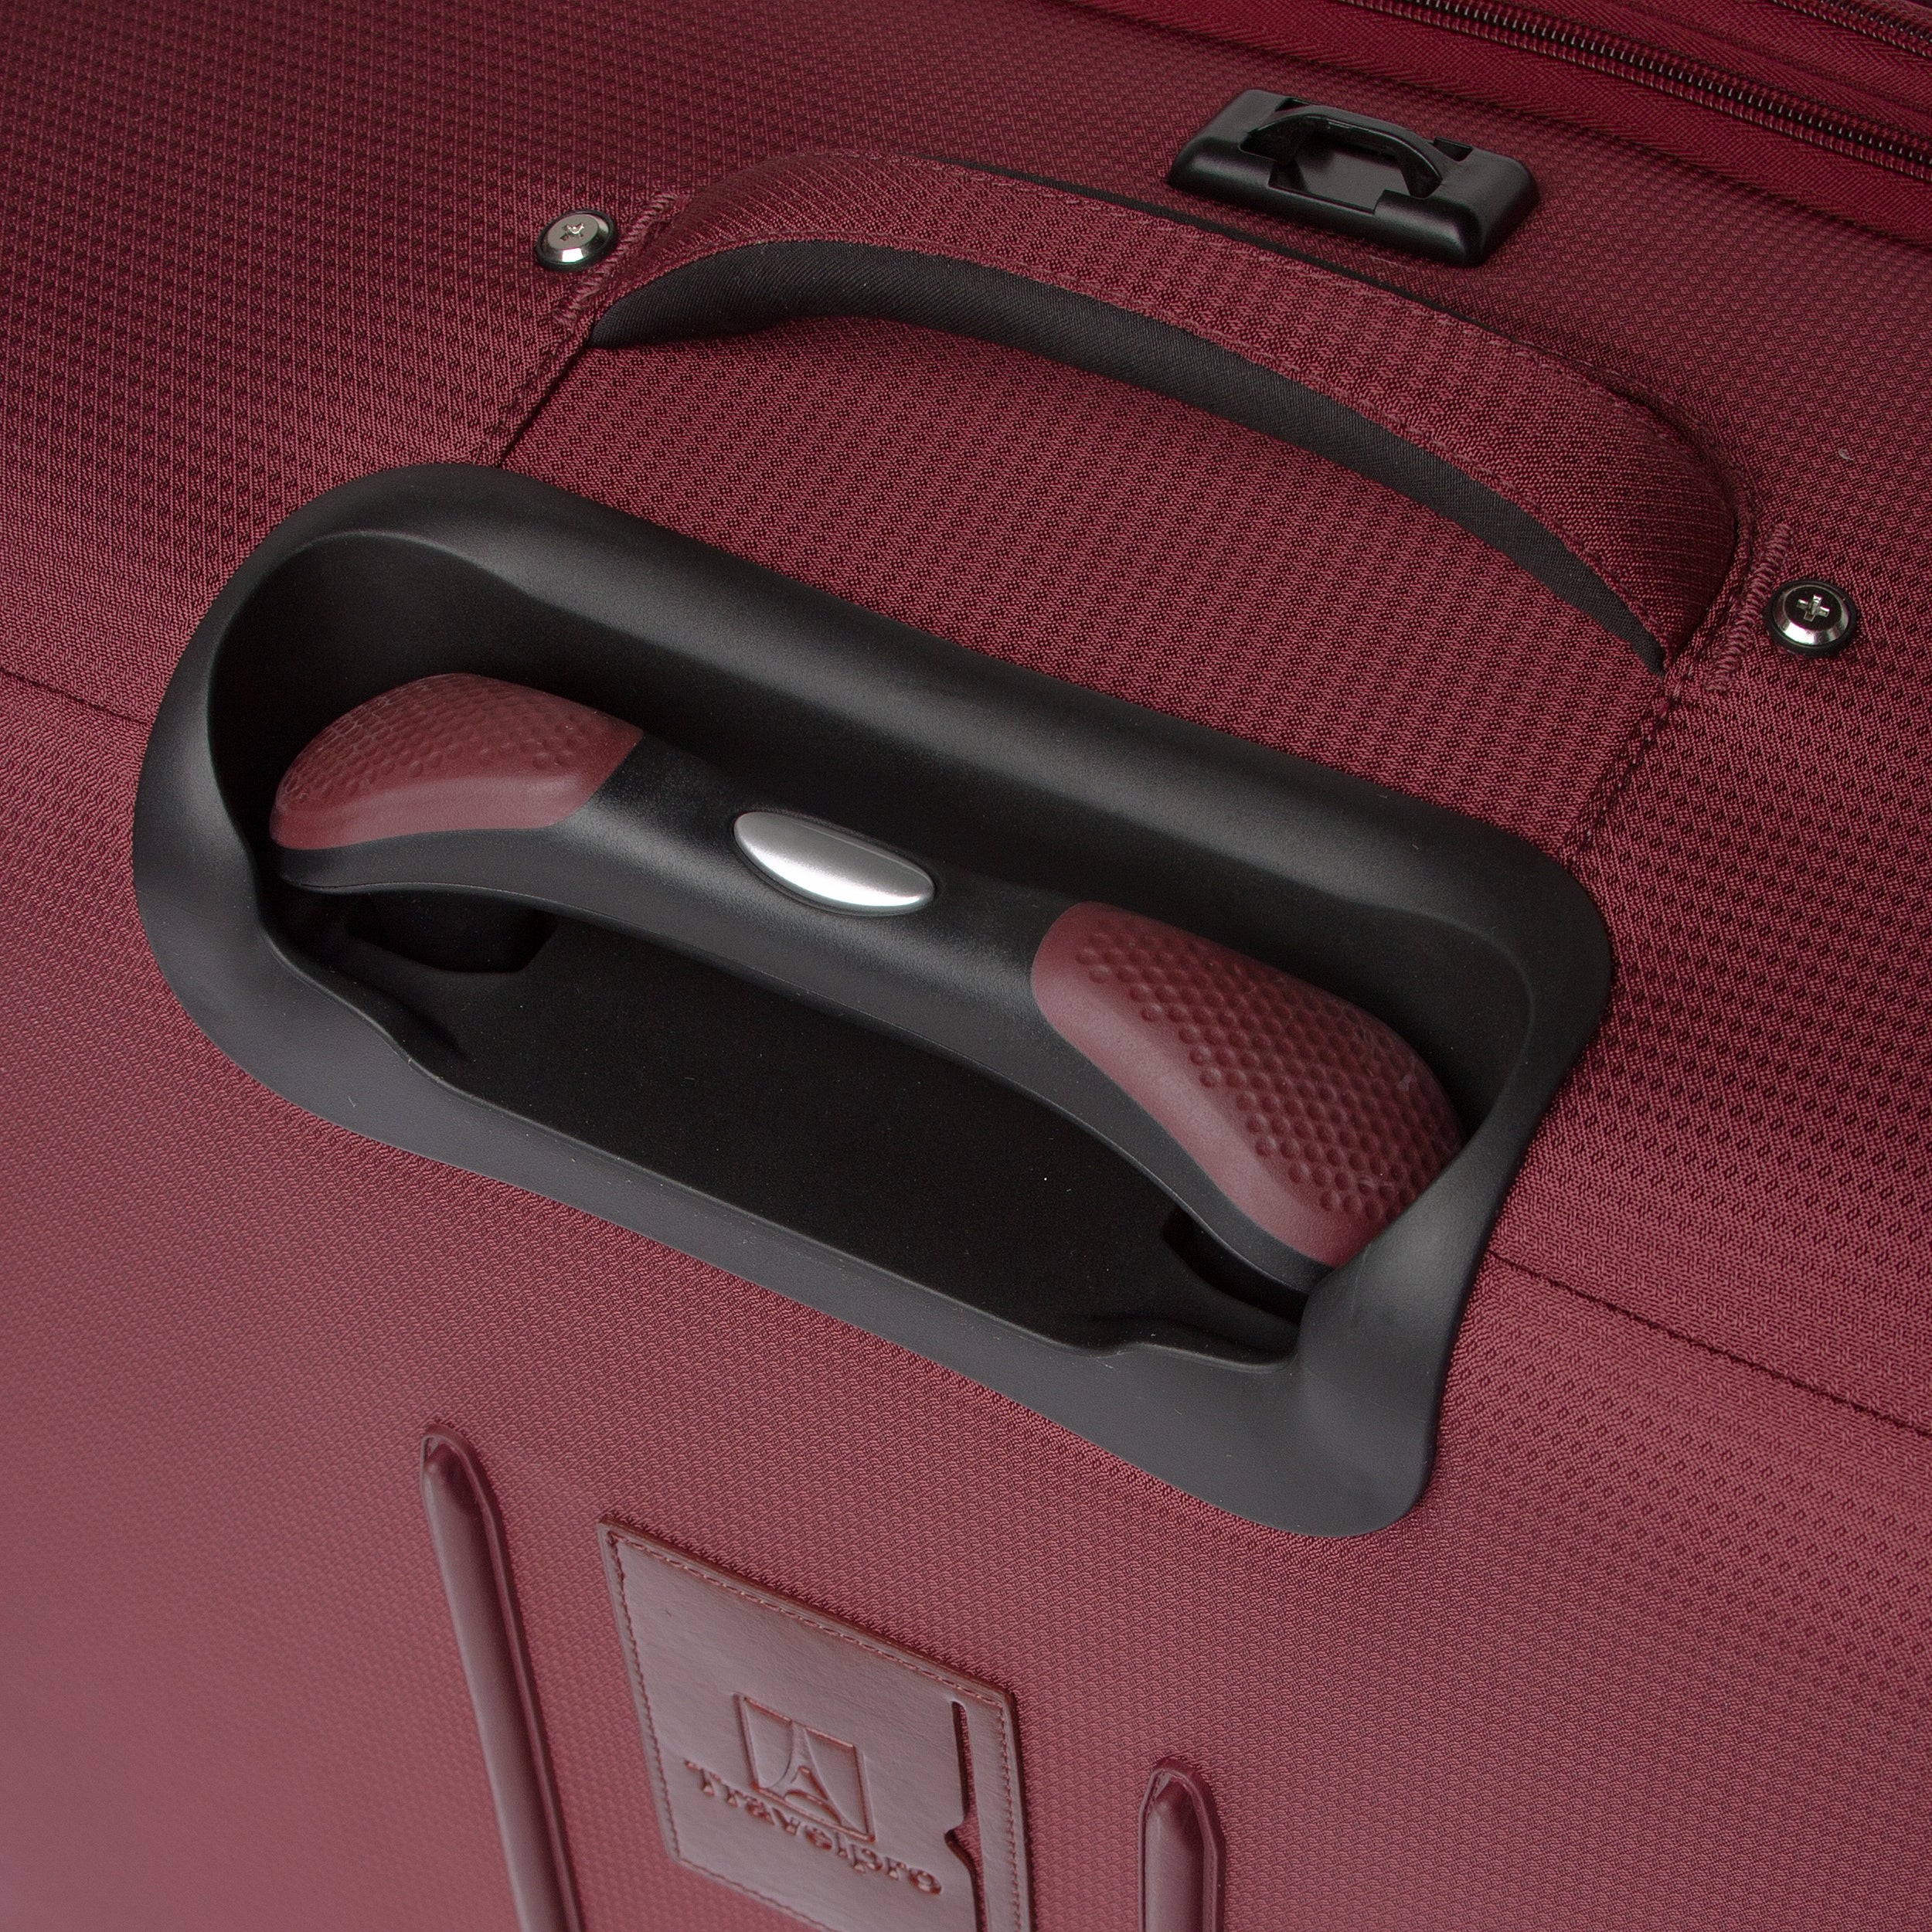 7b54d09b3 Shop TravelPro Runway Collection 29-inch Expandable Spinner Upright  Suitcase - Free Shipping Today - Overstock - 8111244